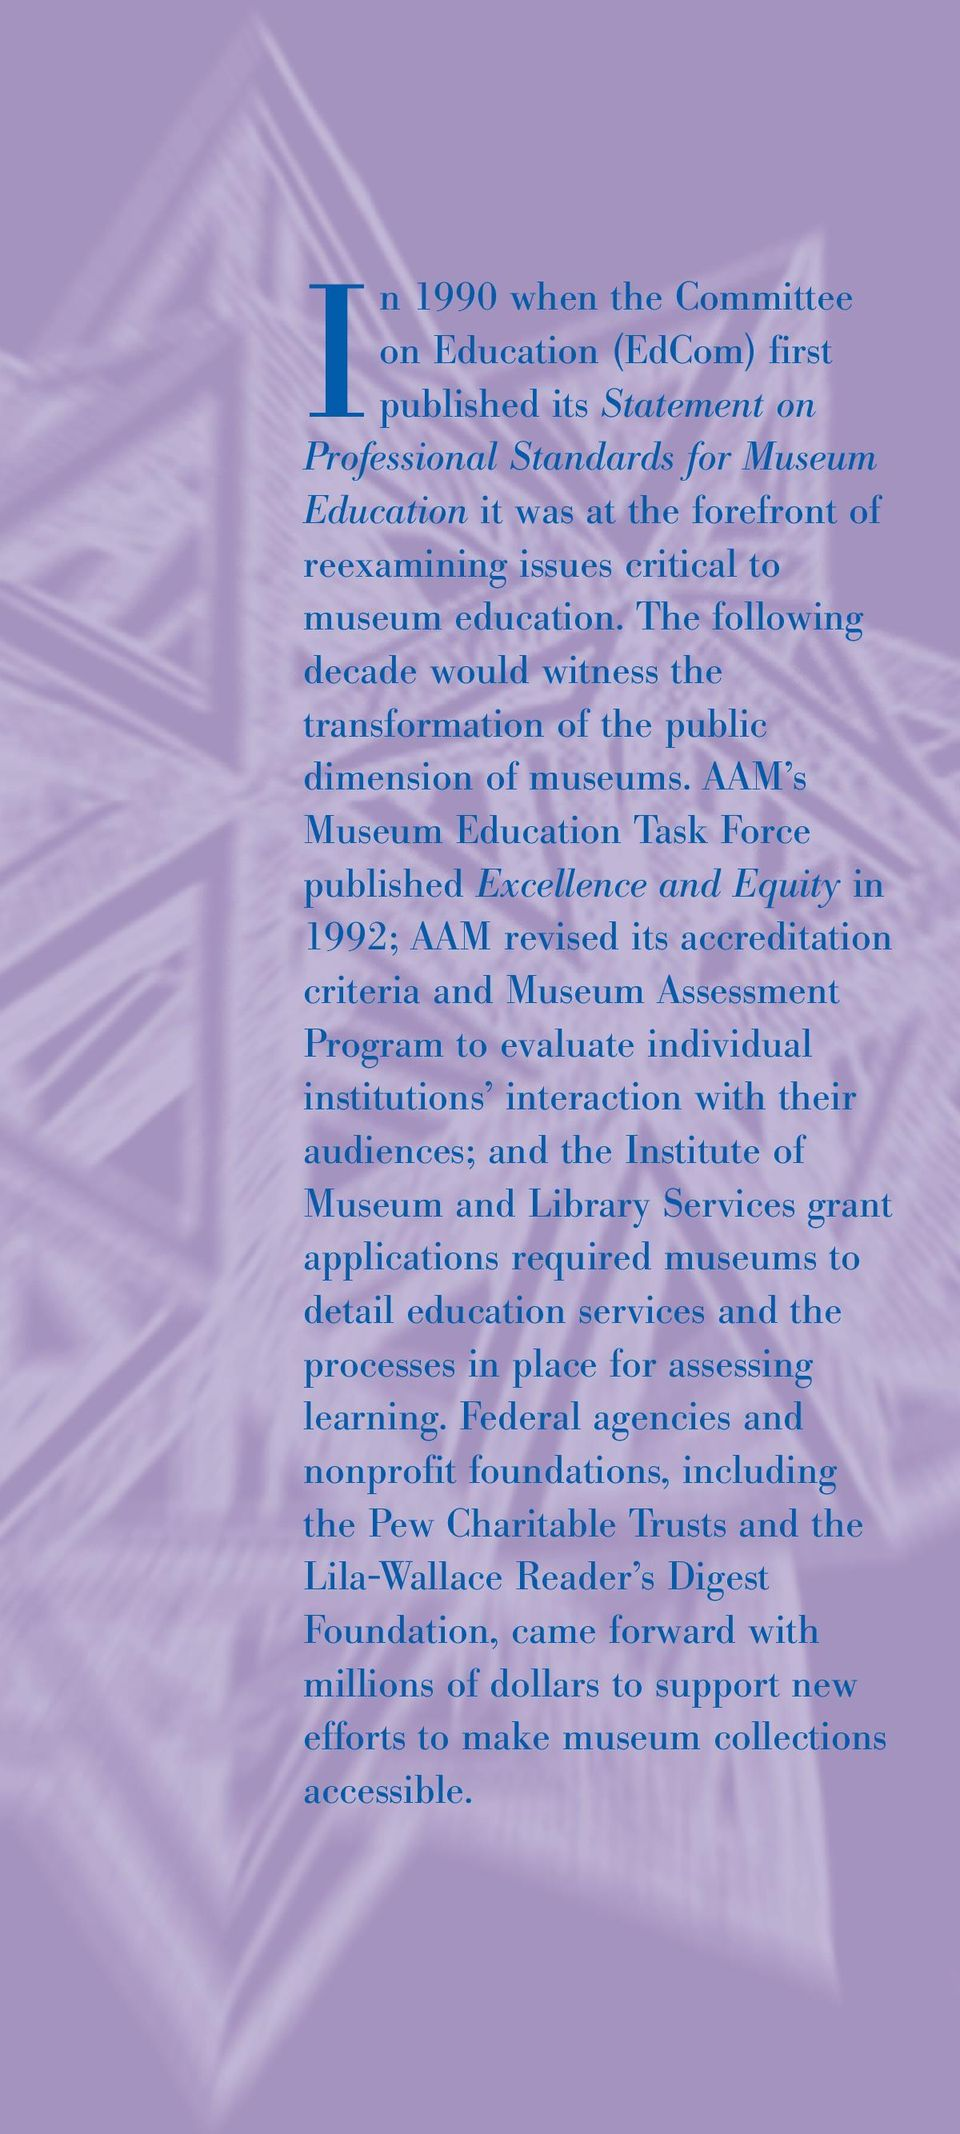 AAM s Museum Education Task Force published Excellence and Equity in 1992; AAM revised its accreditation criteria and Museum Assessment Program to evaluate individual institutions interaction with